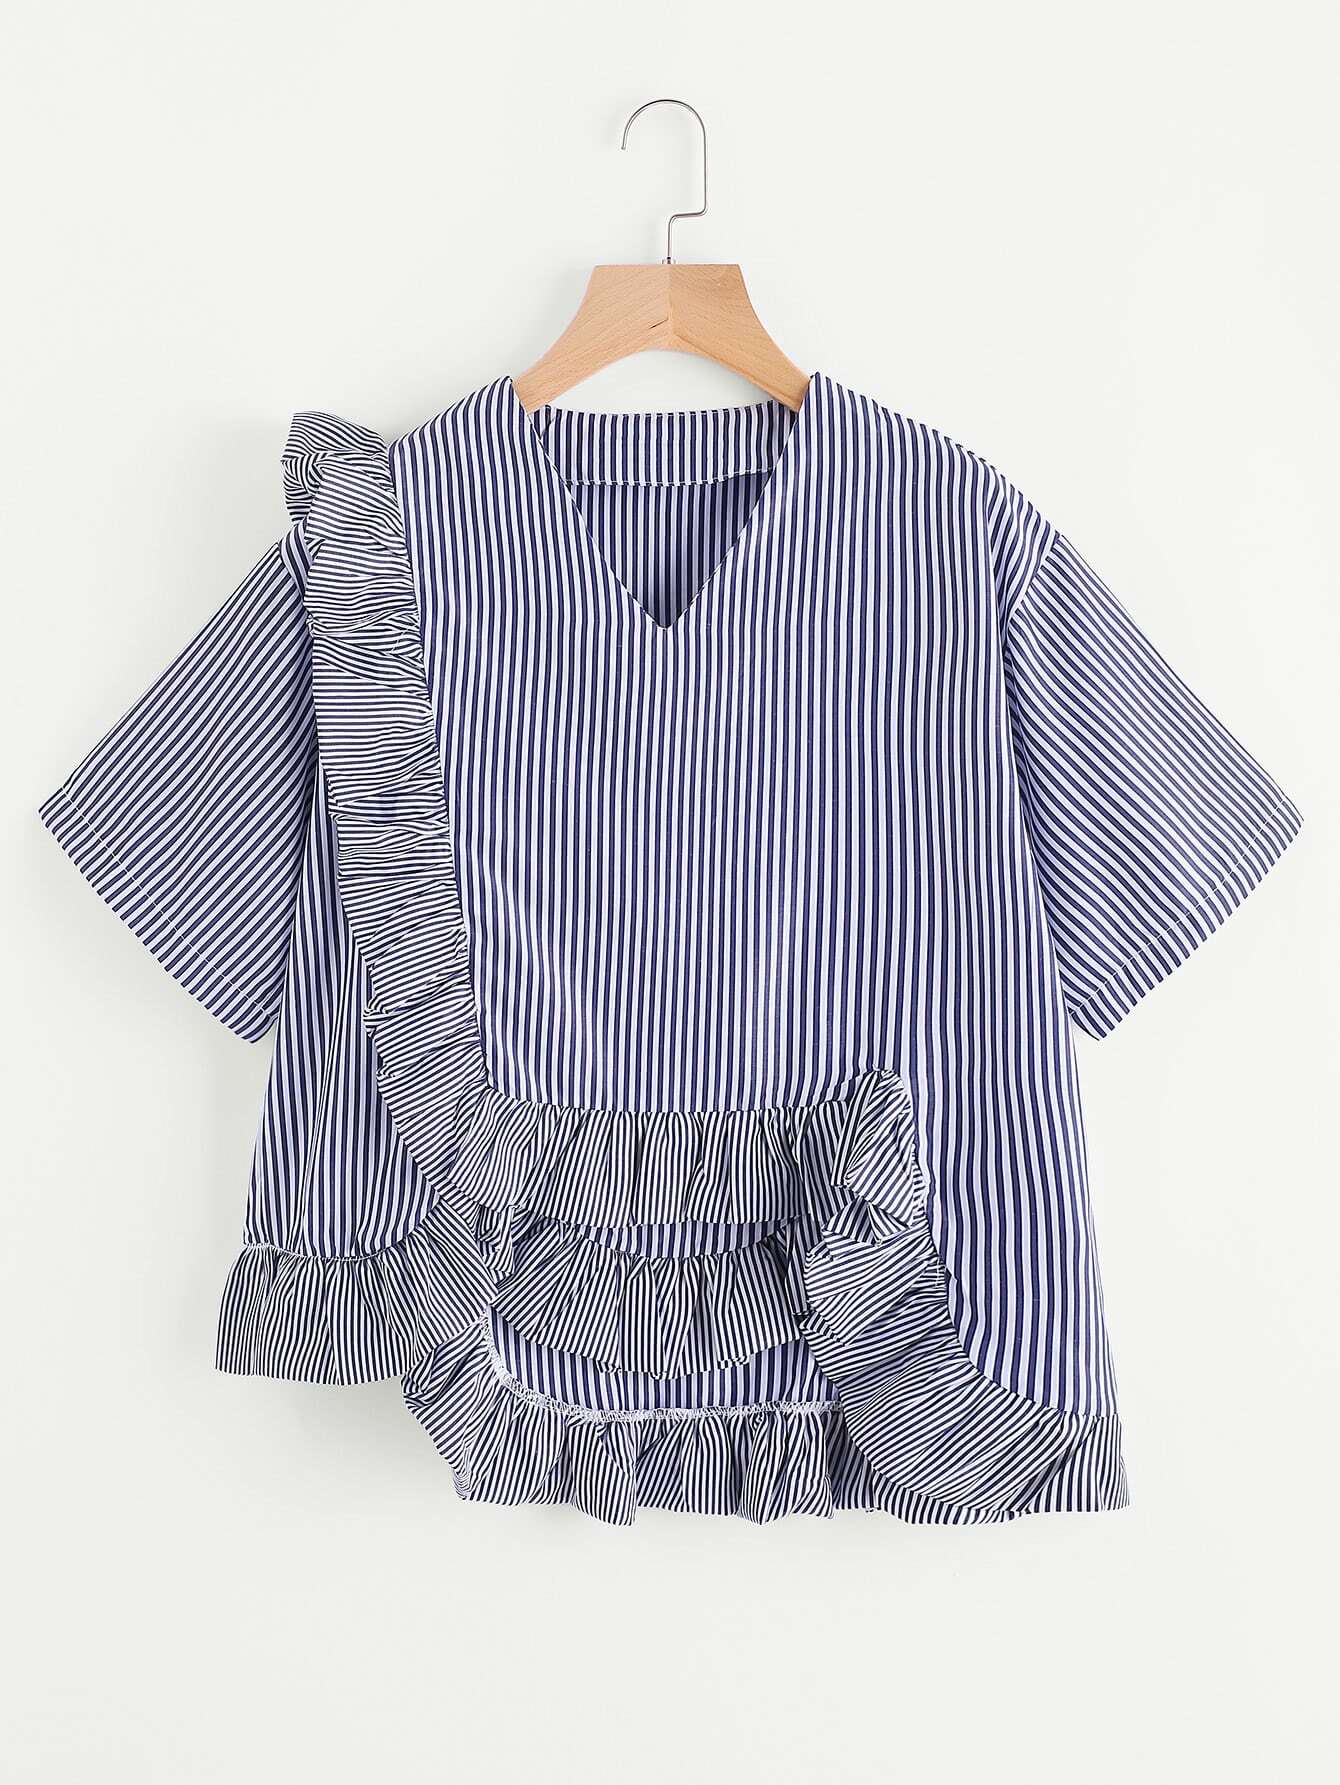 Vertical Striped Top With Exaggerated Frill blouse170510102